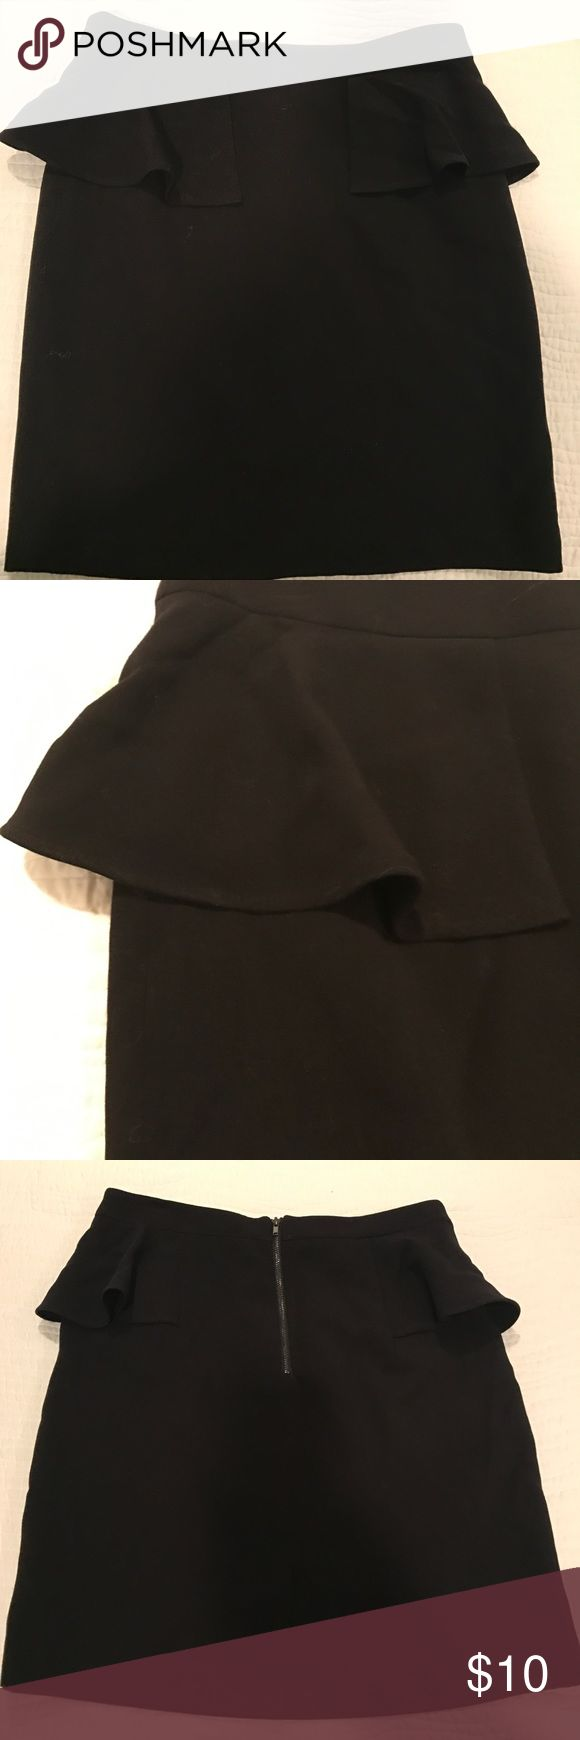 Forever 21 Black Peplum Skirt Great condition, nice piece to dress up or down Forever 21 Skirts Pencil